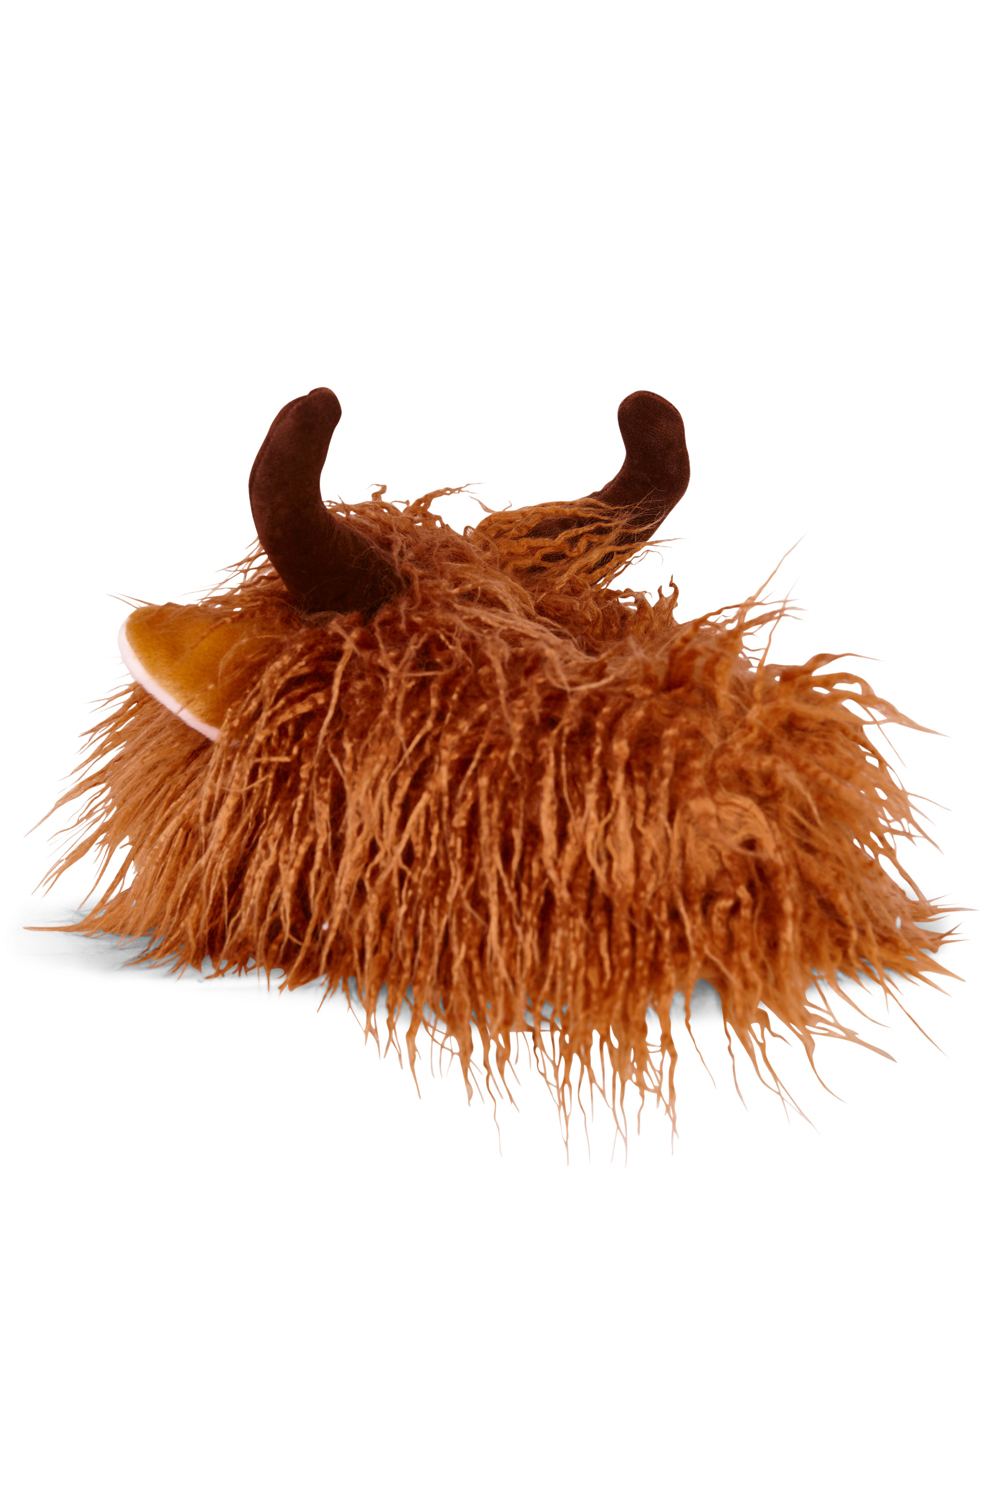 Loungeable-Mens-Novelty-3D-Highland-Cow-Design-Slip-on-Warm-Soft-Plush-Slippers thumbnail 4